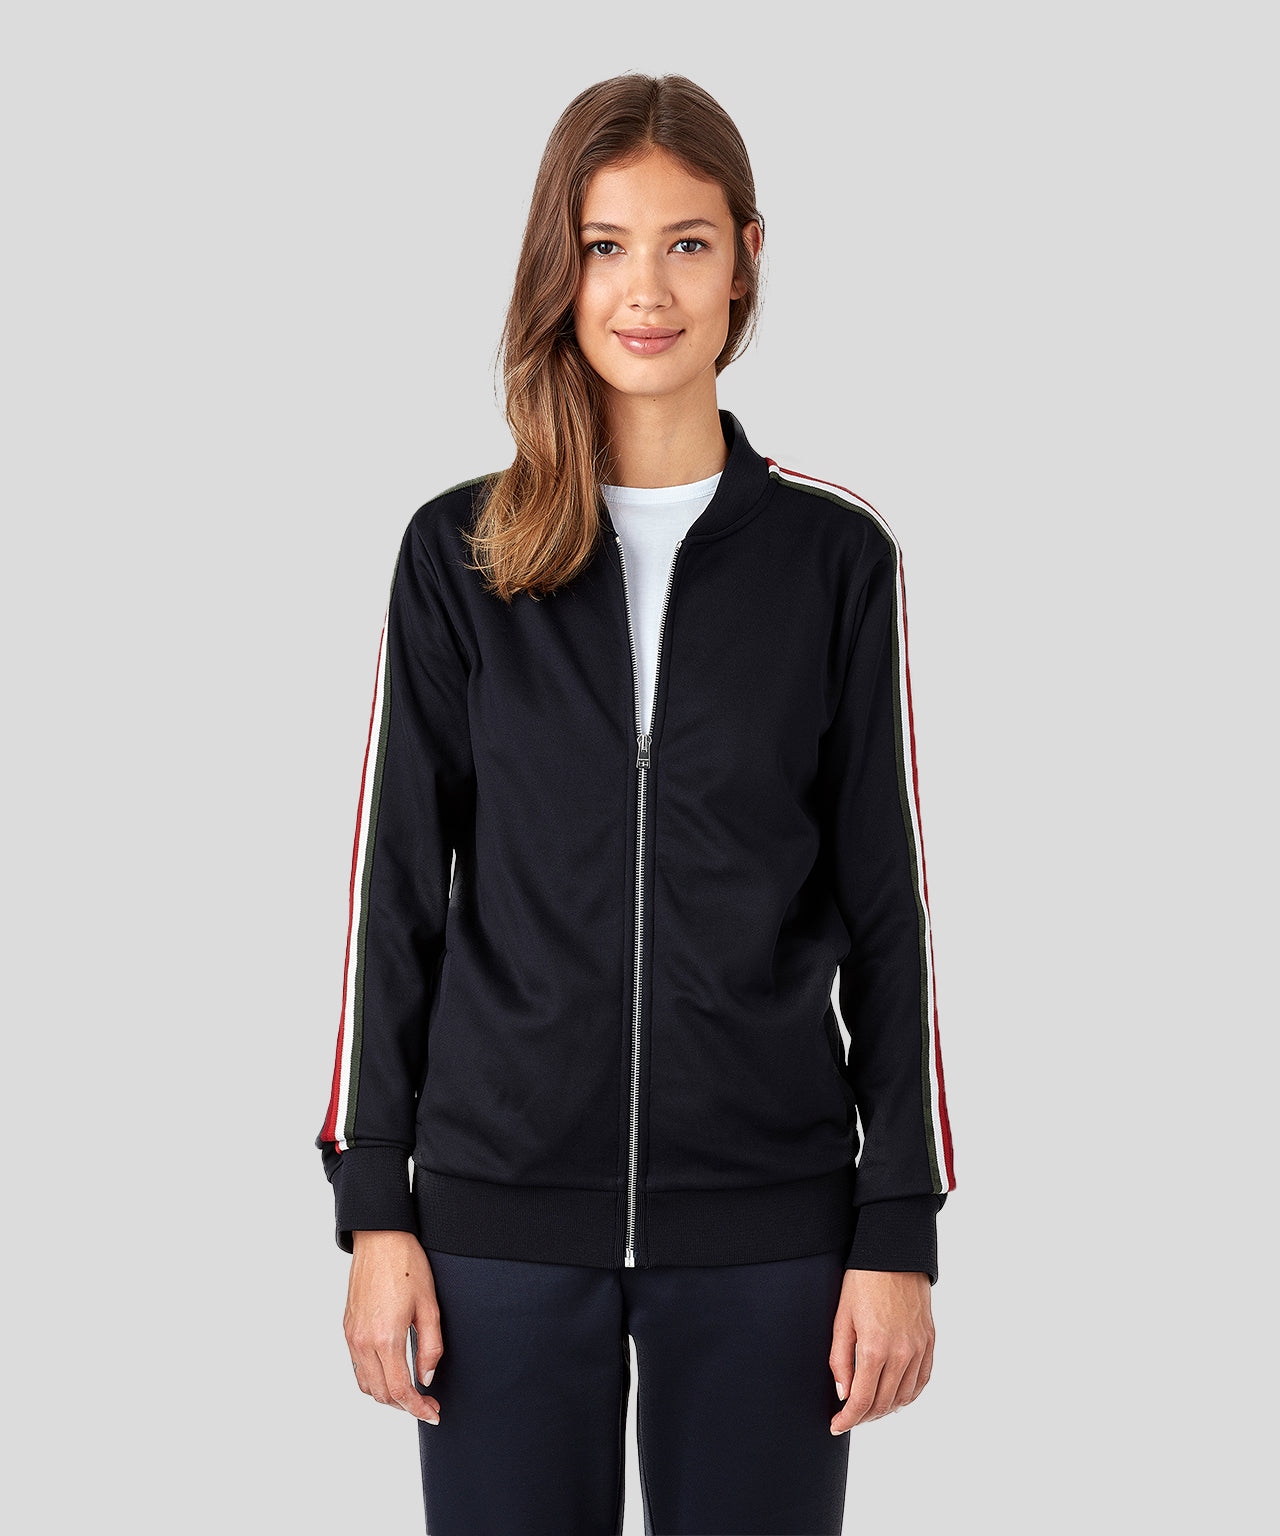 Striped Tennis Jacket His For Her - navy